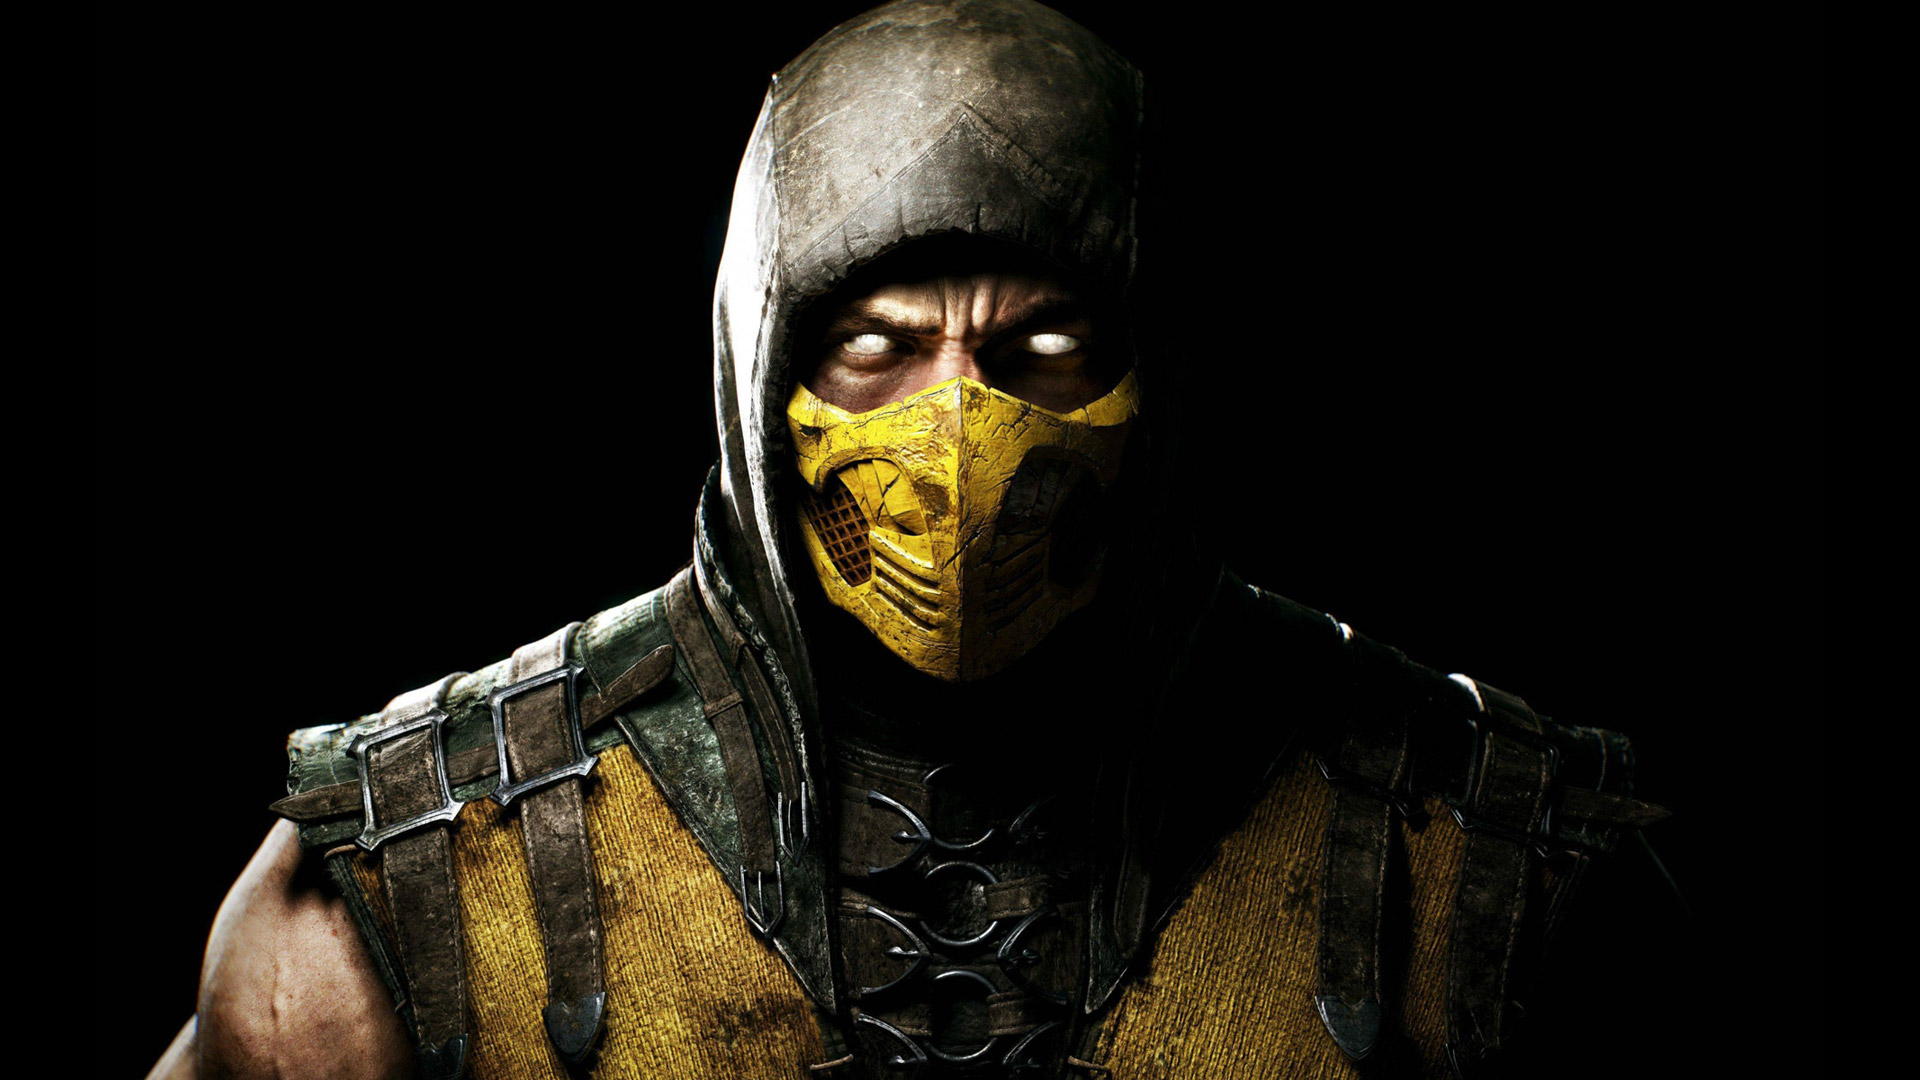 Mortal Kombat X Wallpaper in 1920x1080